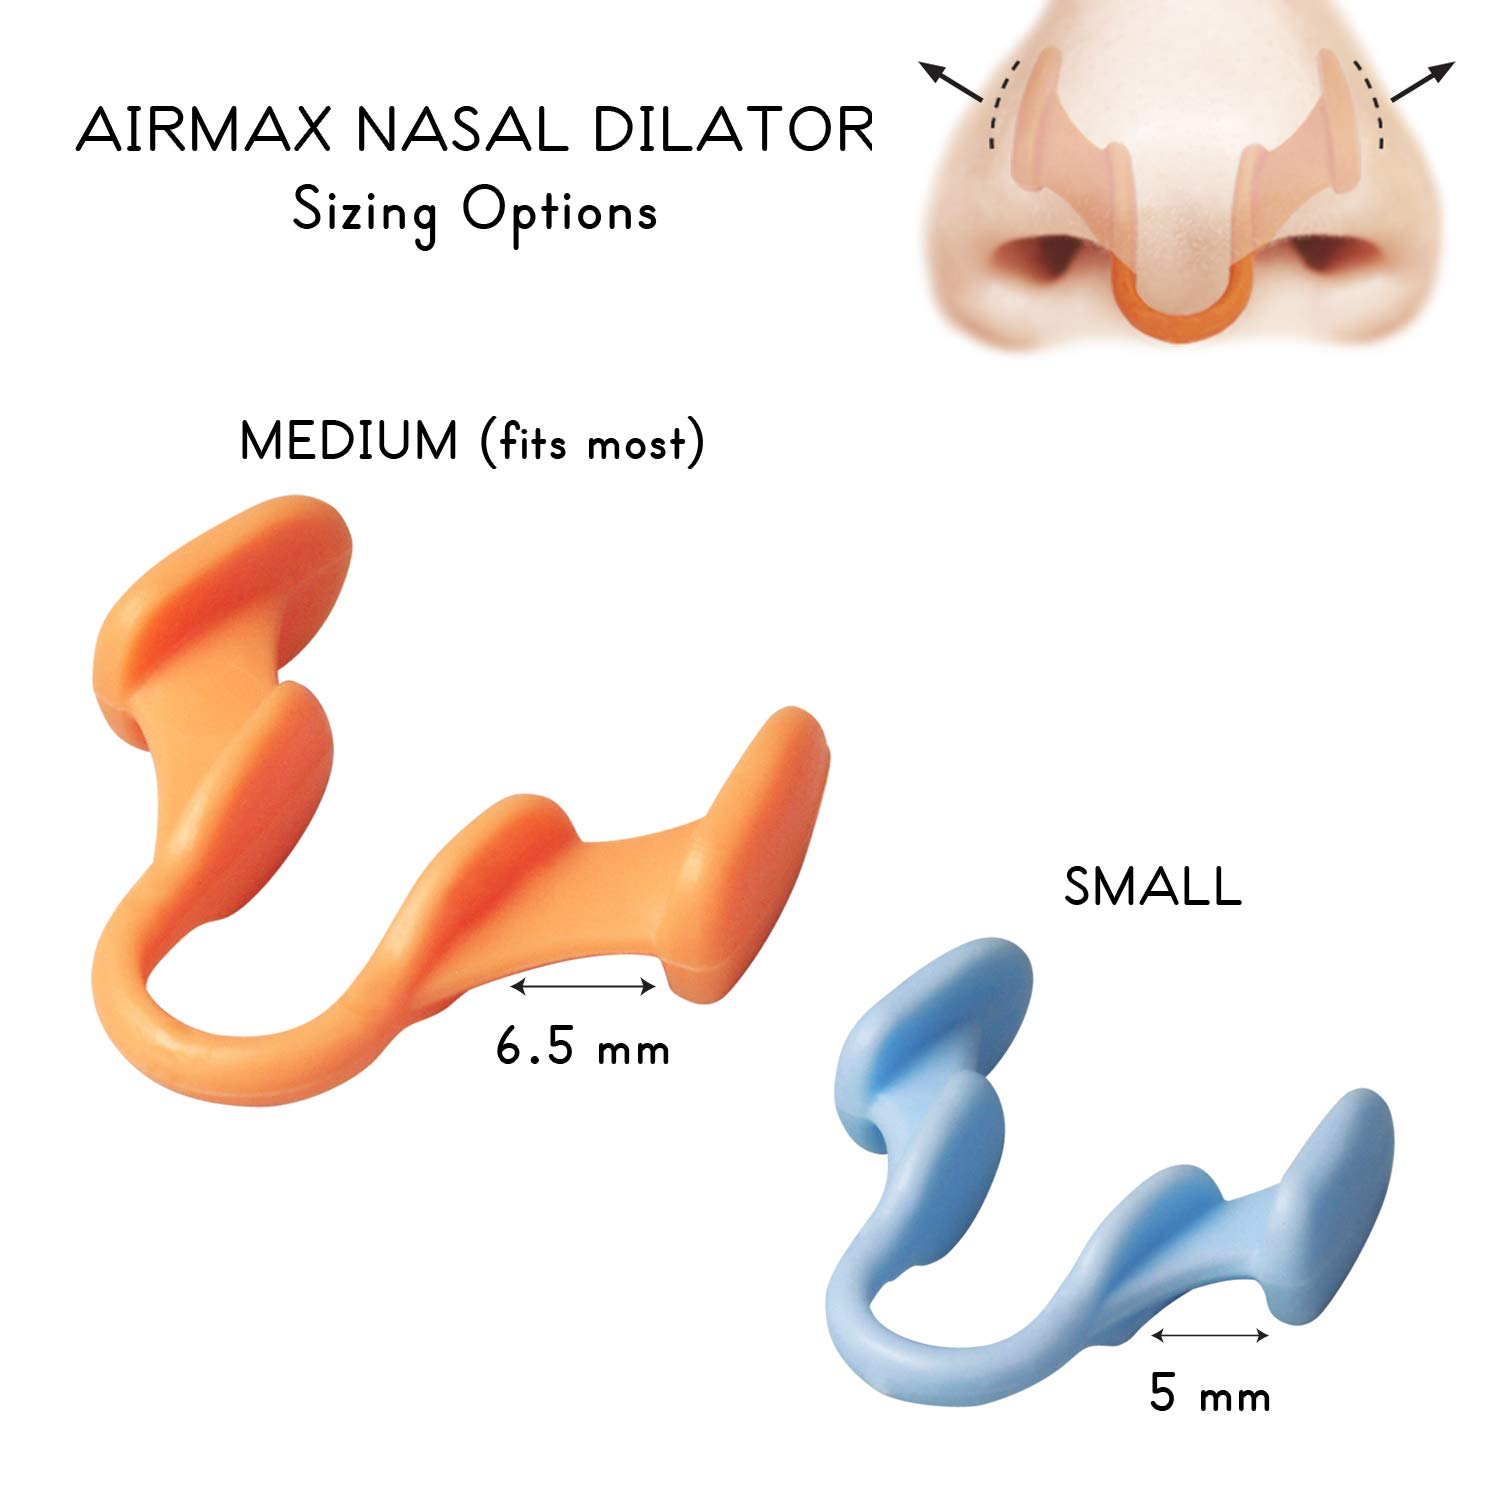 Amazon.com: AIRMAX Nasal Dilator for Better Breathing – Natural, Comfortable, Breathing Aid Solution for Maximum Airflow & Reduced Nasal Congestion (Small ...